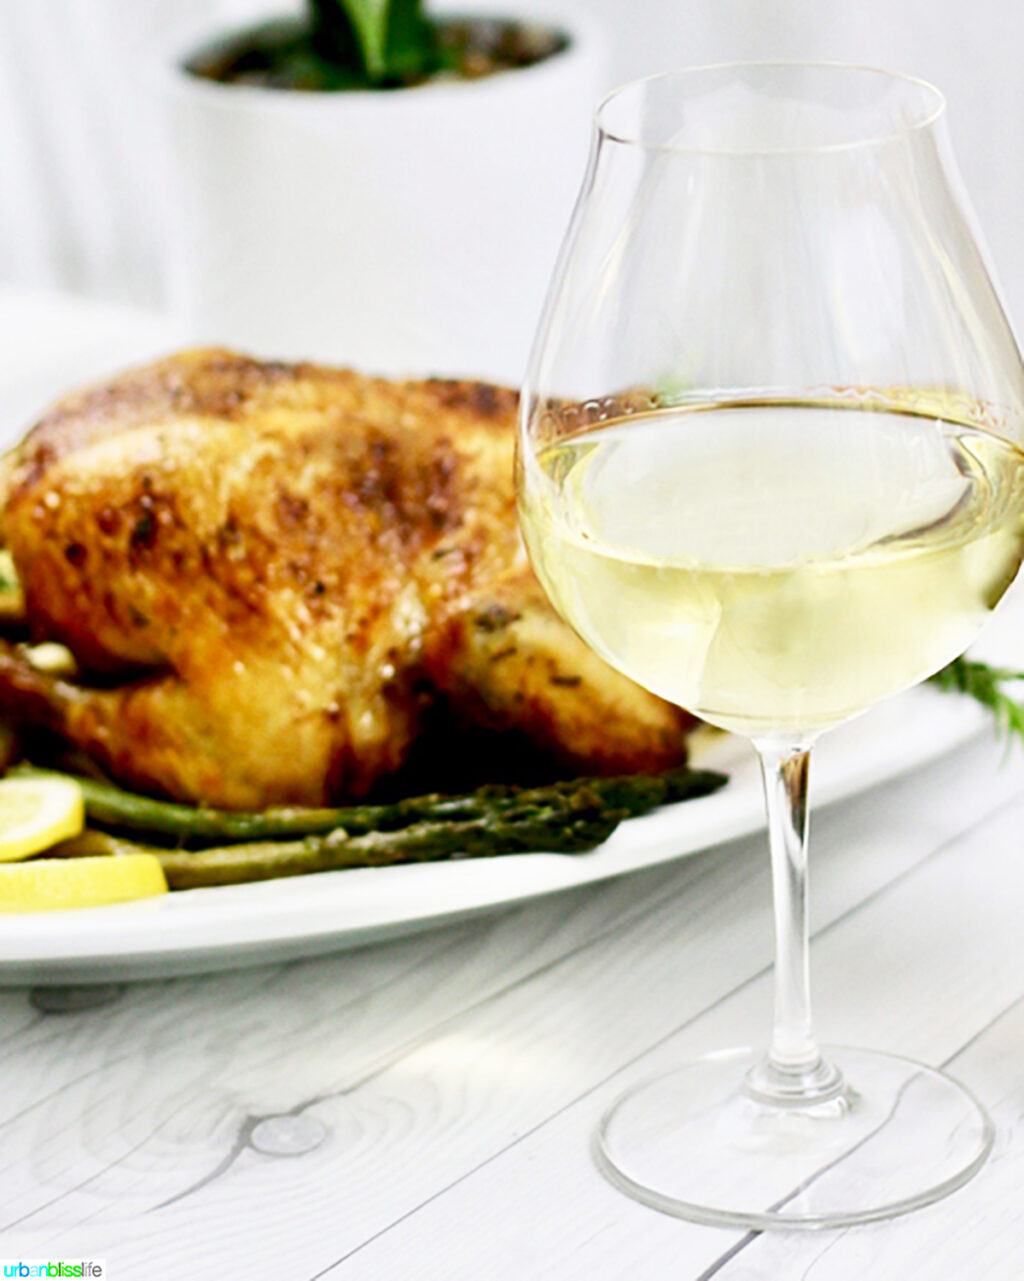 white wine pairing poultry